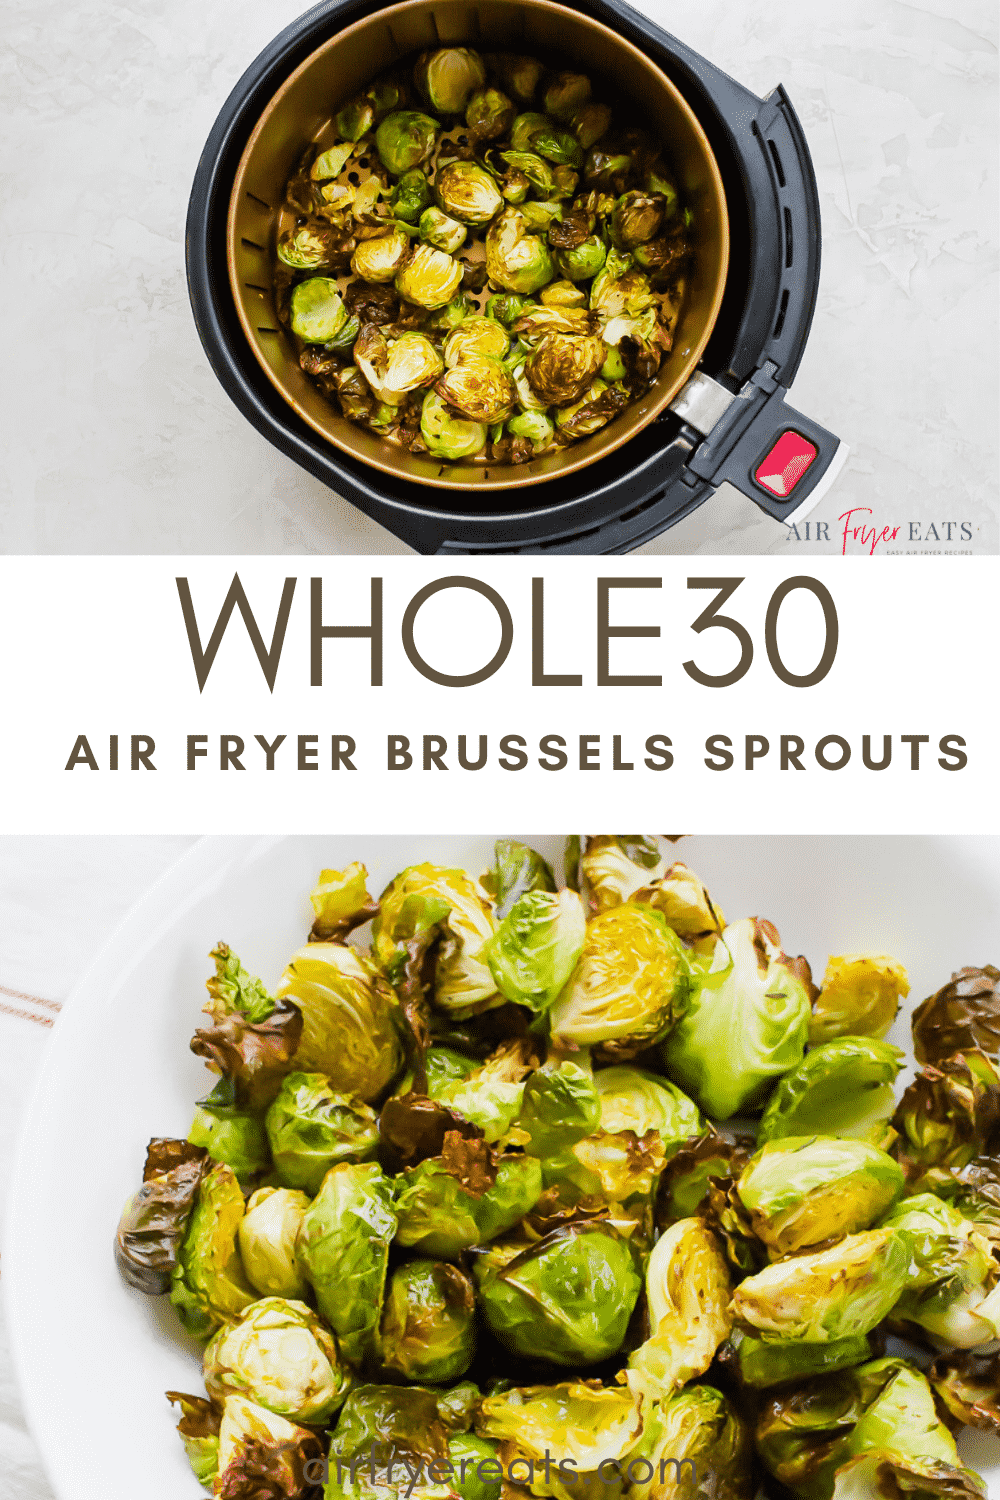 Air Fryer Brussel Sprouts are not only nutritious, but incredibly flavorful! In less than 15 minutes your air fryer gives these sprouts the most delectable crispy crunch on the outside with a roasted, caramelized flavor that is out of this world! #brusselsprouts #sprouts #airfryerbrusselsprouts #airfryersprouts via @vegetarianmamma